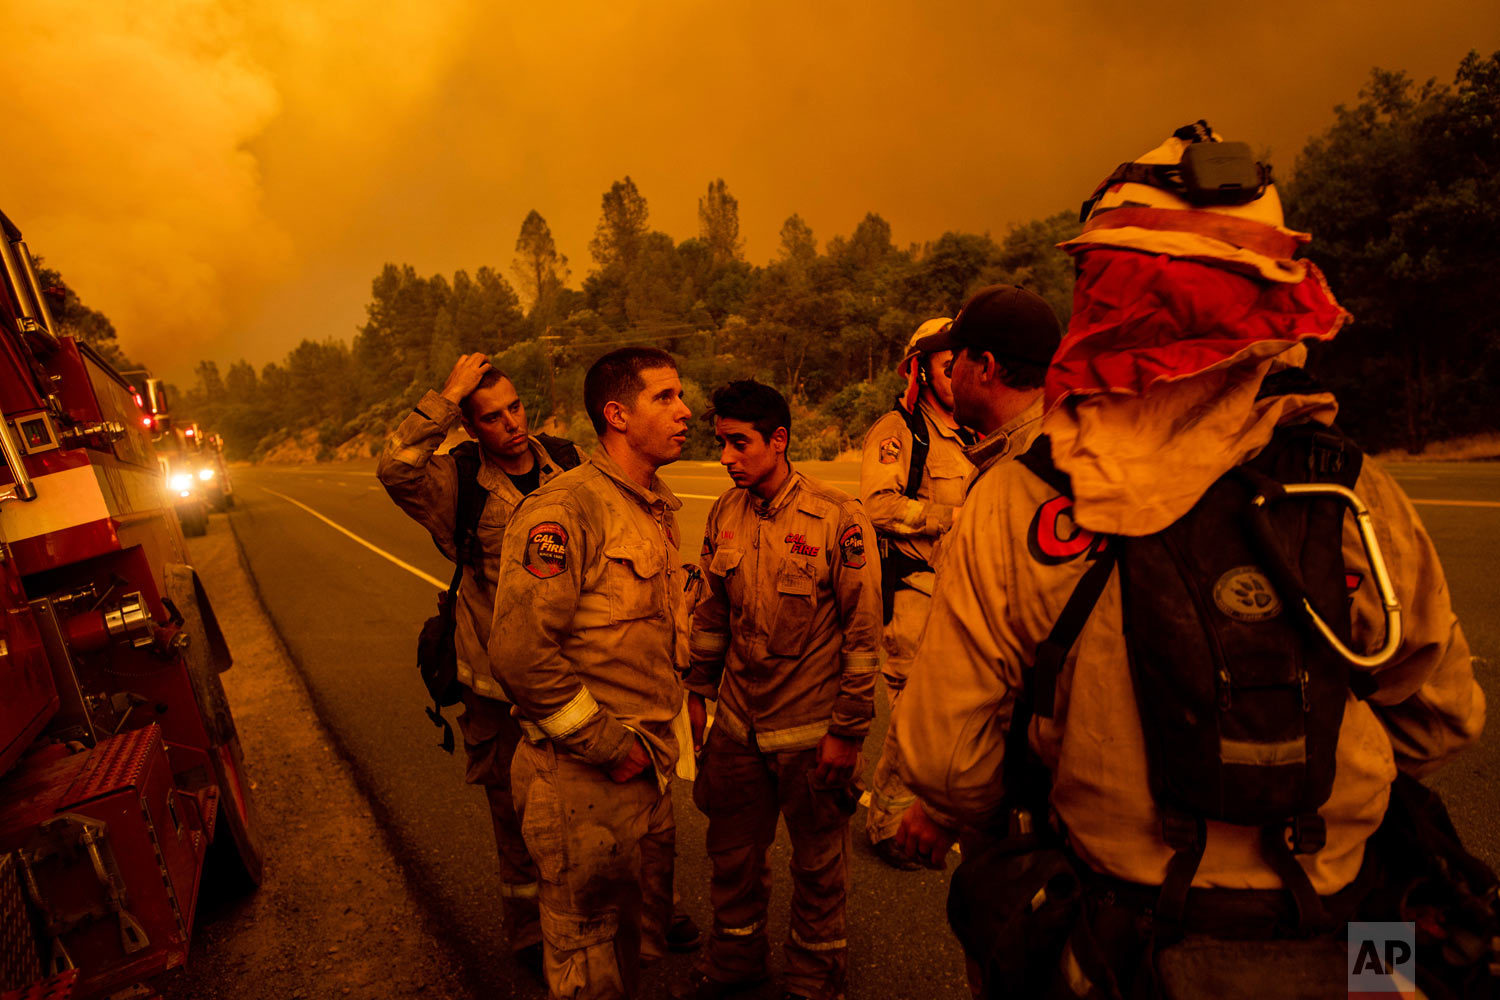 Firefighters discuss plans while battling the Carr Fire in Shasta, Calif., on Thursday, July 26, 2018. (AP Photo/Noah Berger)